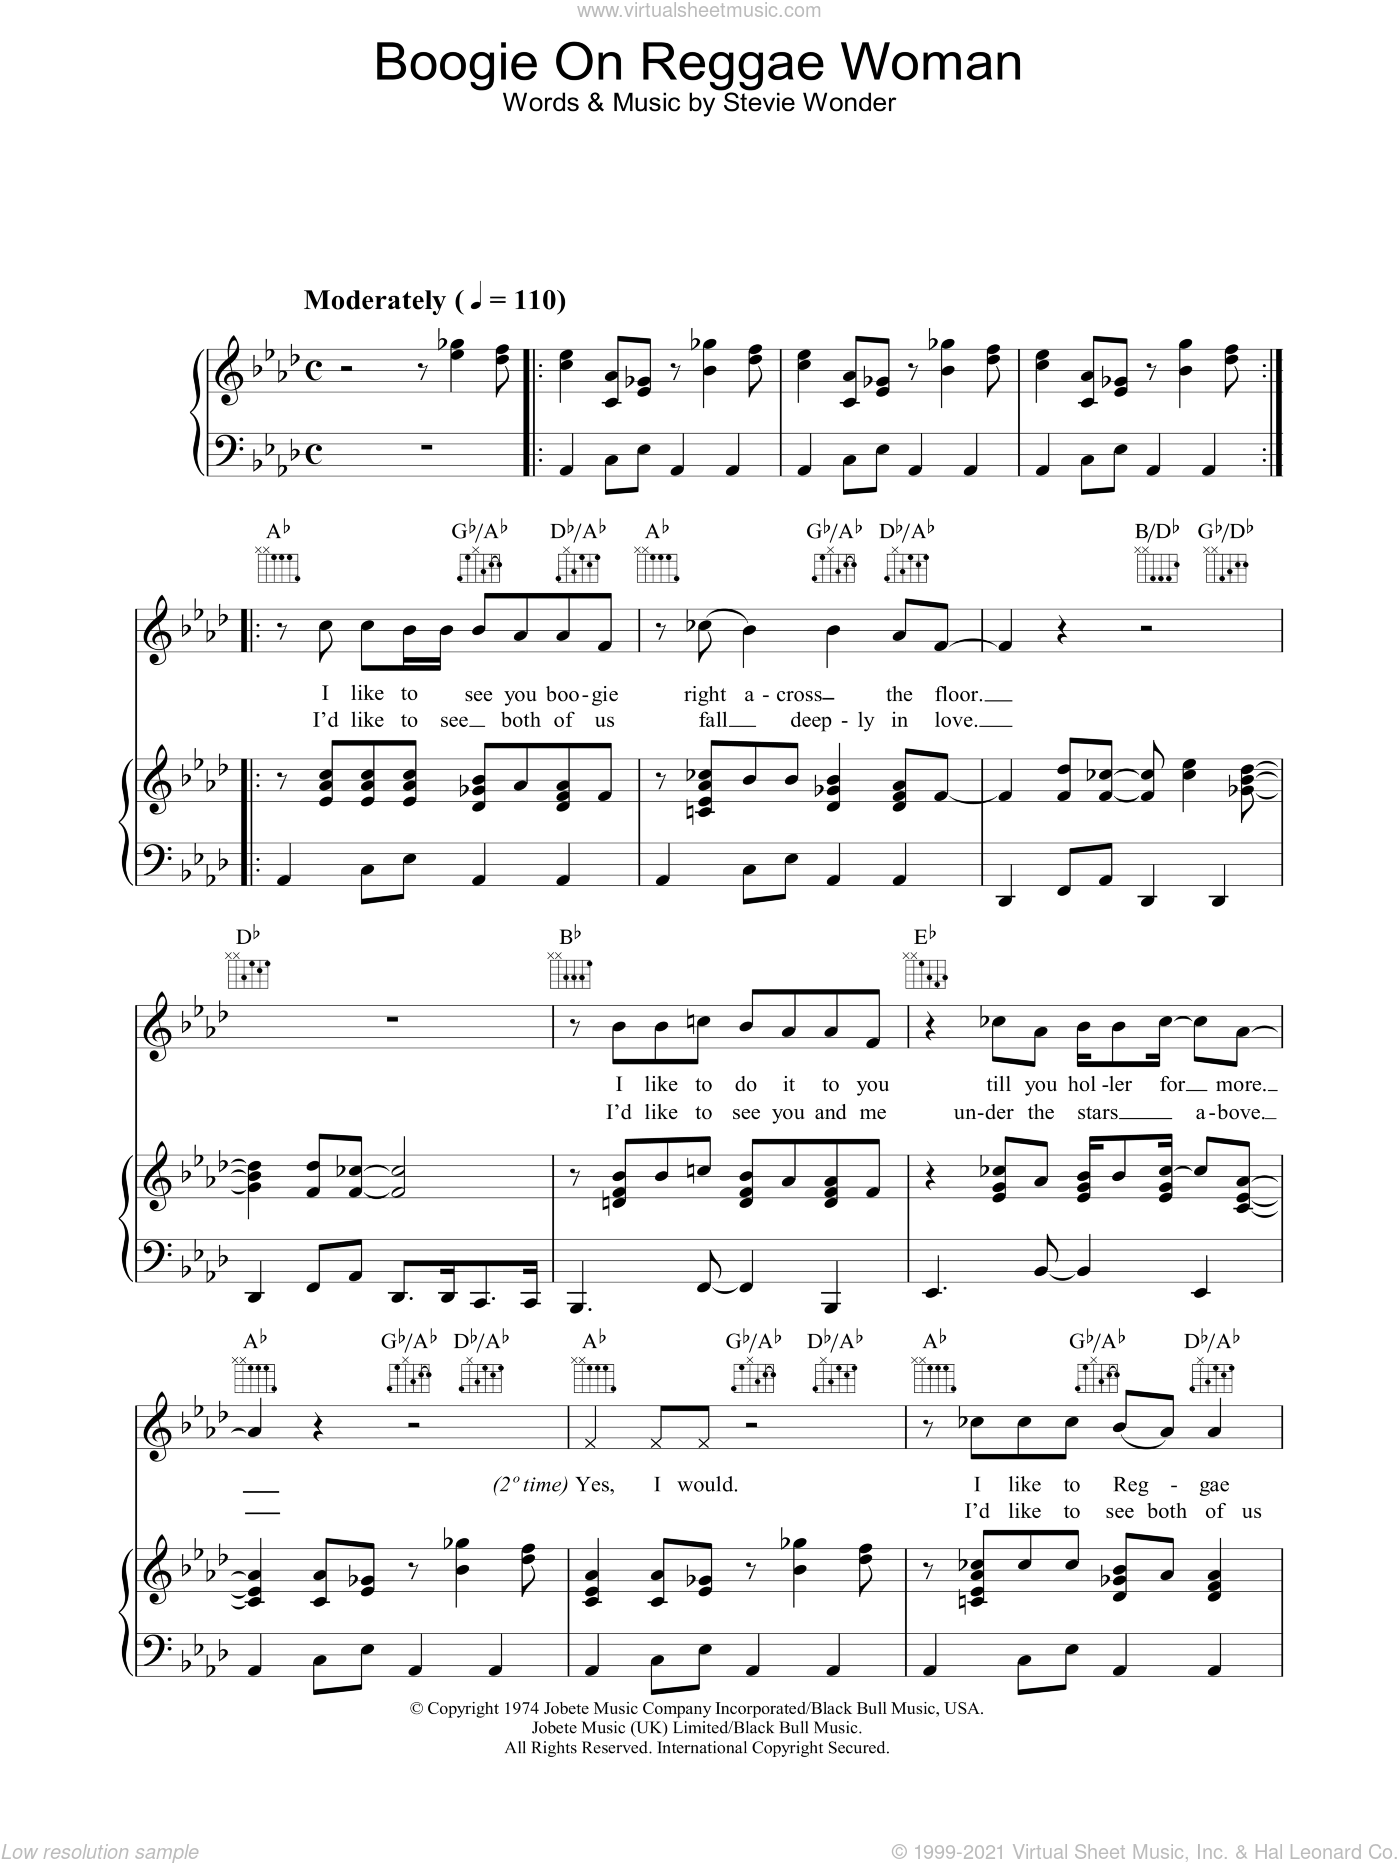 Boogie On Reggae Woman sheet music for voice, piano or guitar by Stevie Wonder